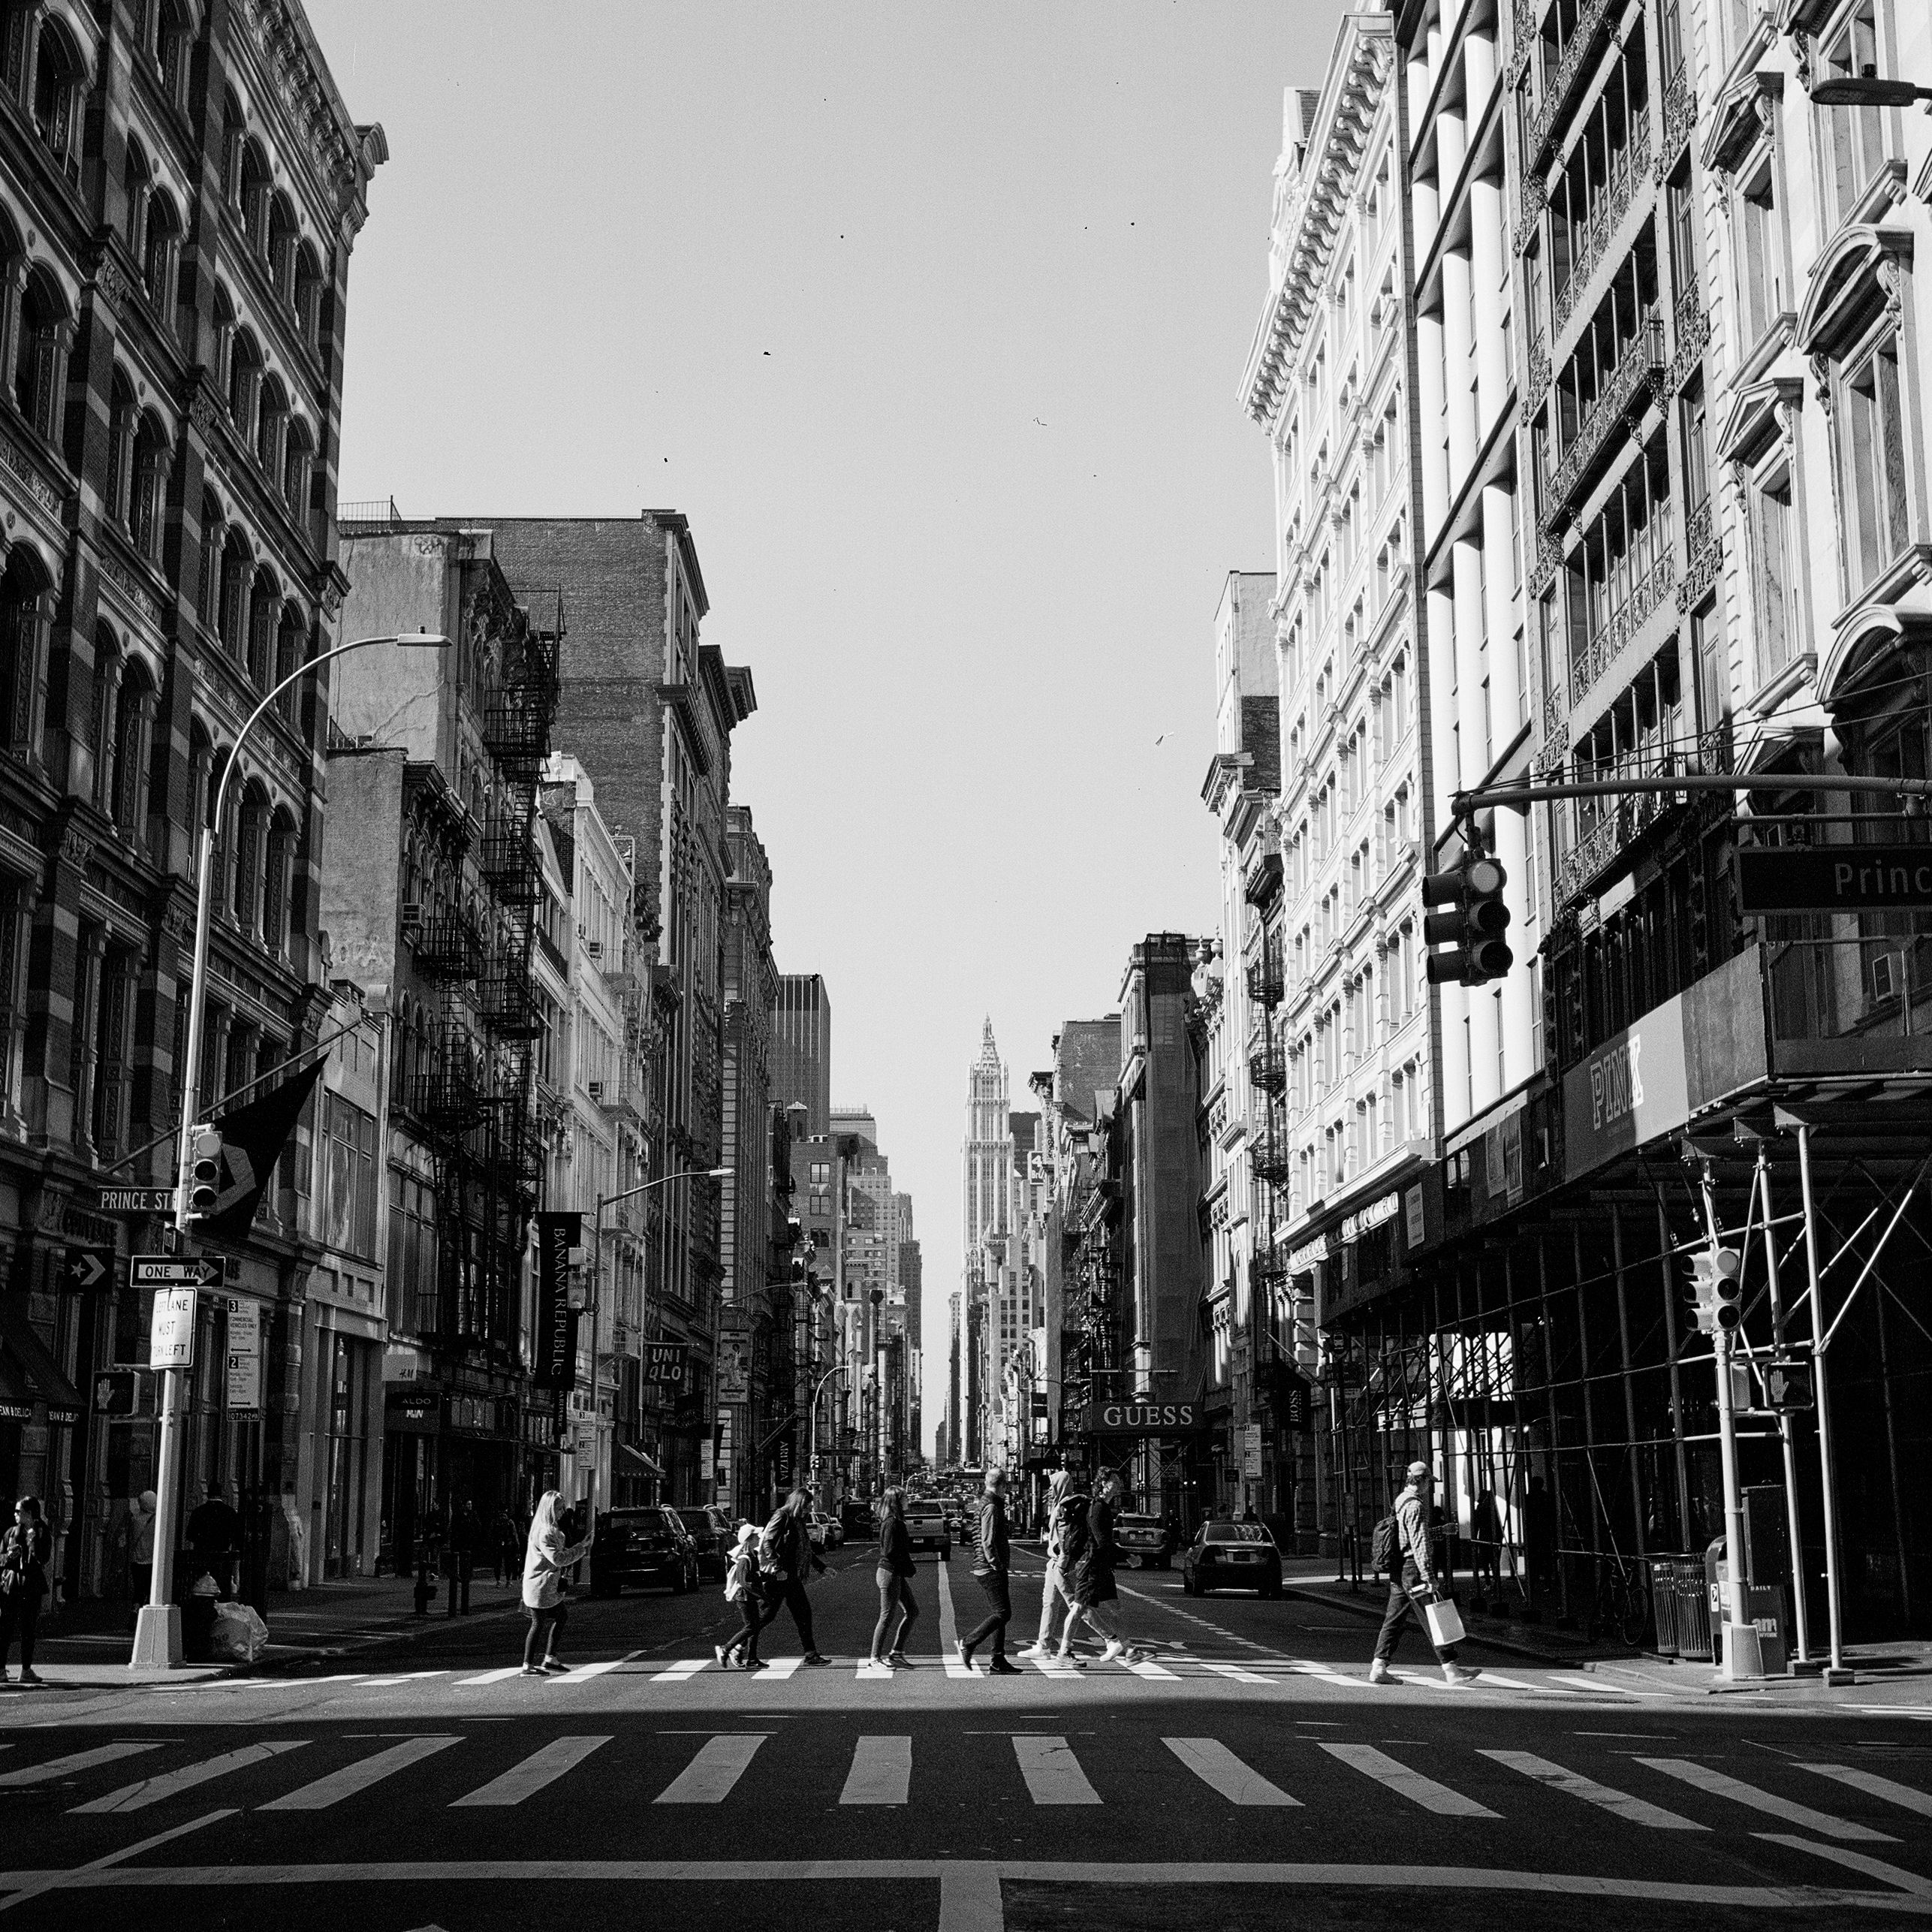 Nathan Kraxberger New York City Streets City Aesthetic Black Aesthetic Wallpaper Black And White Photo Wall